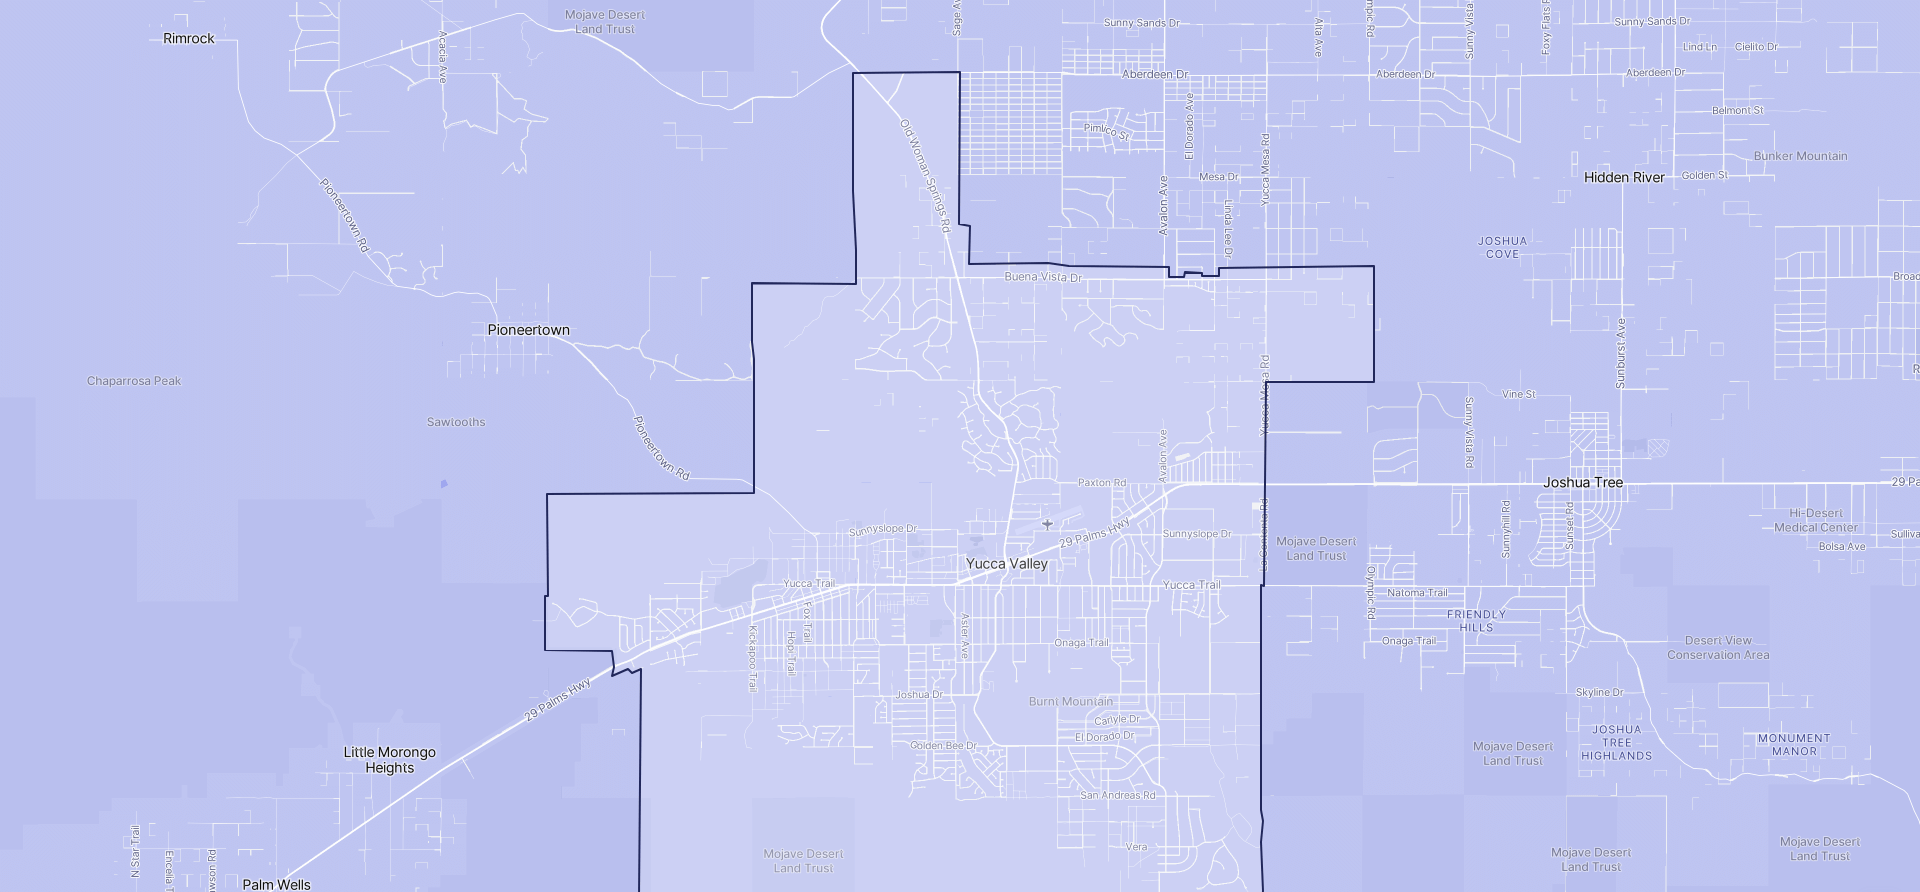 Image of Yucca Valley boundaries on a map.